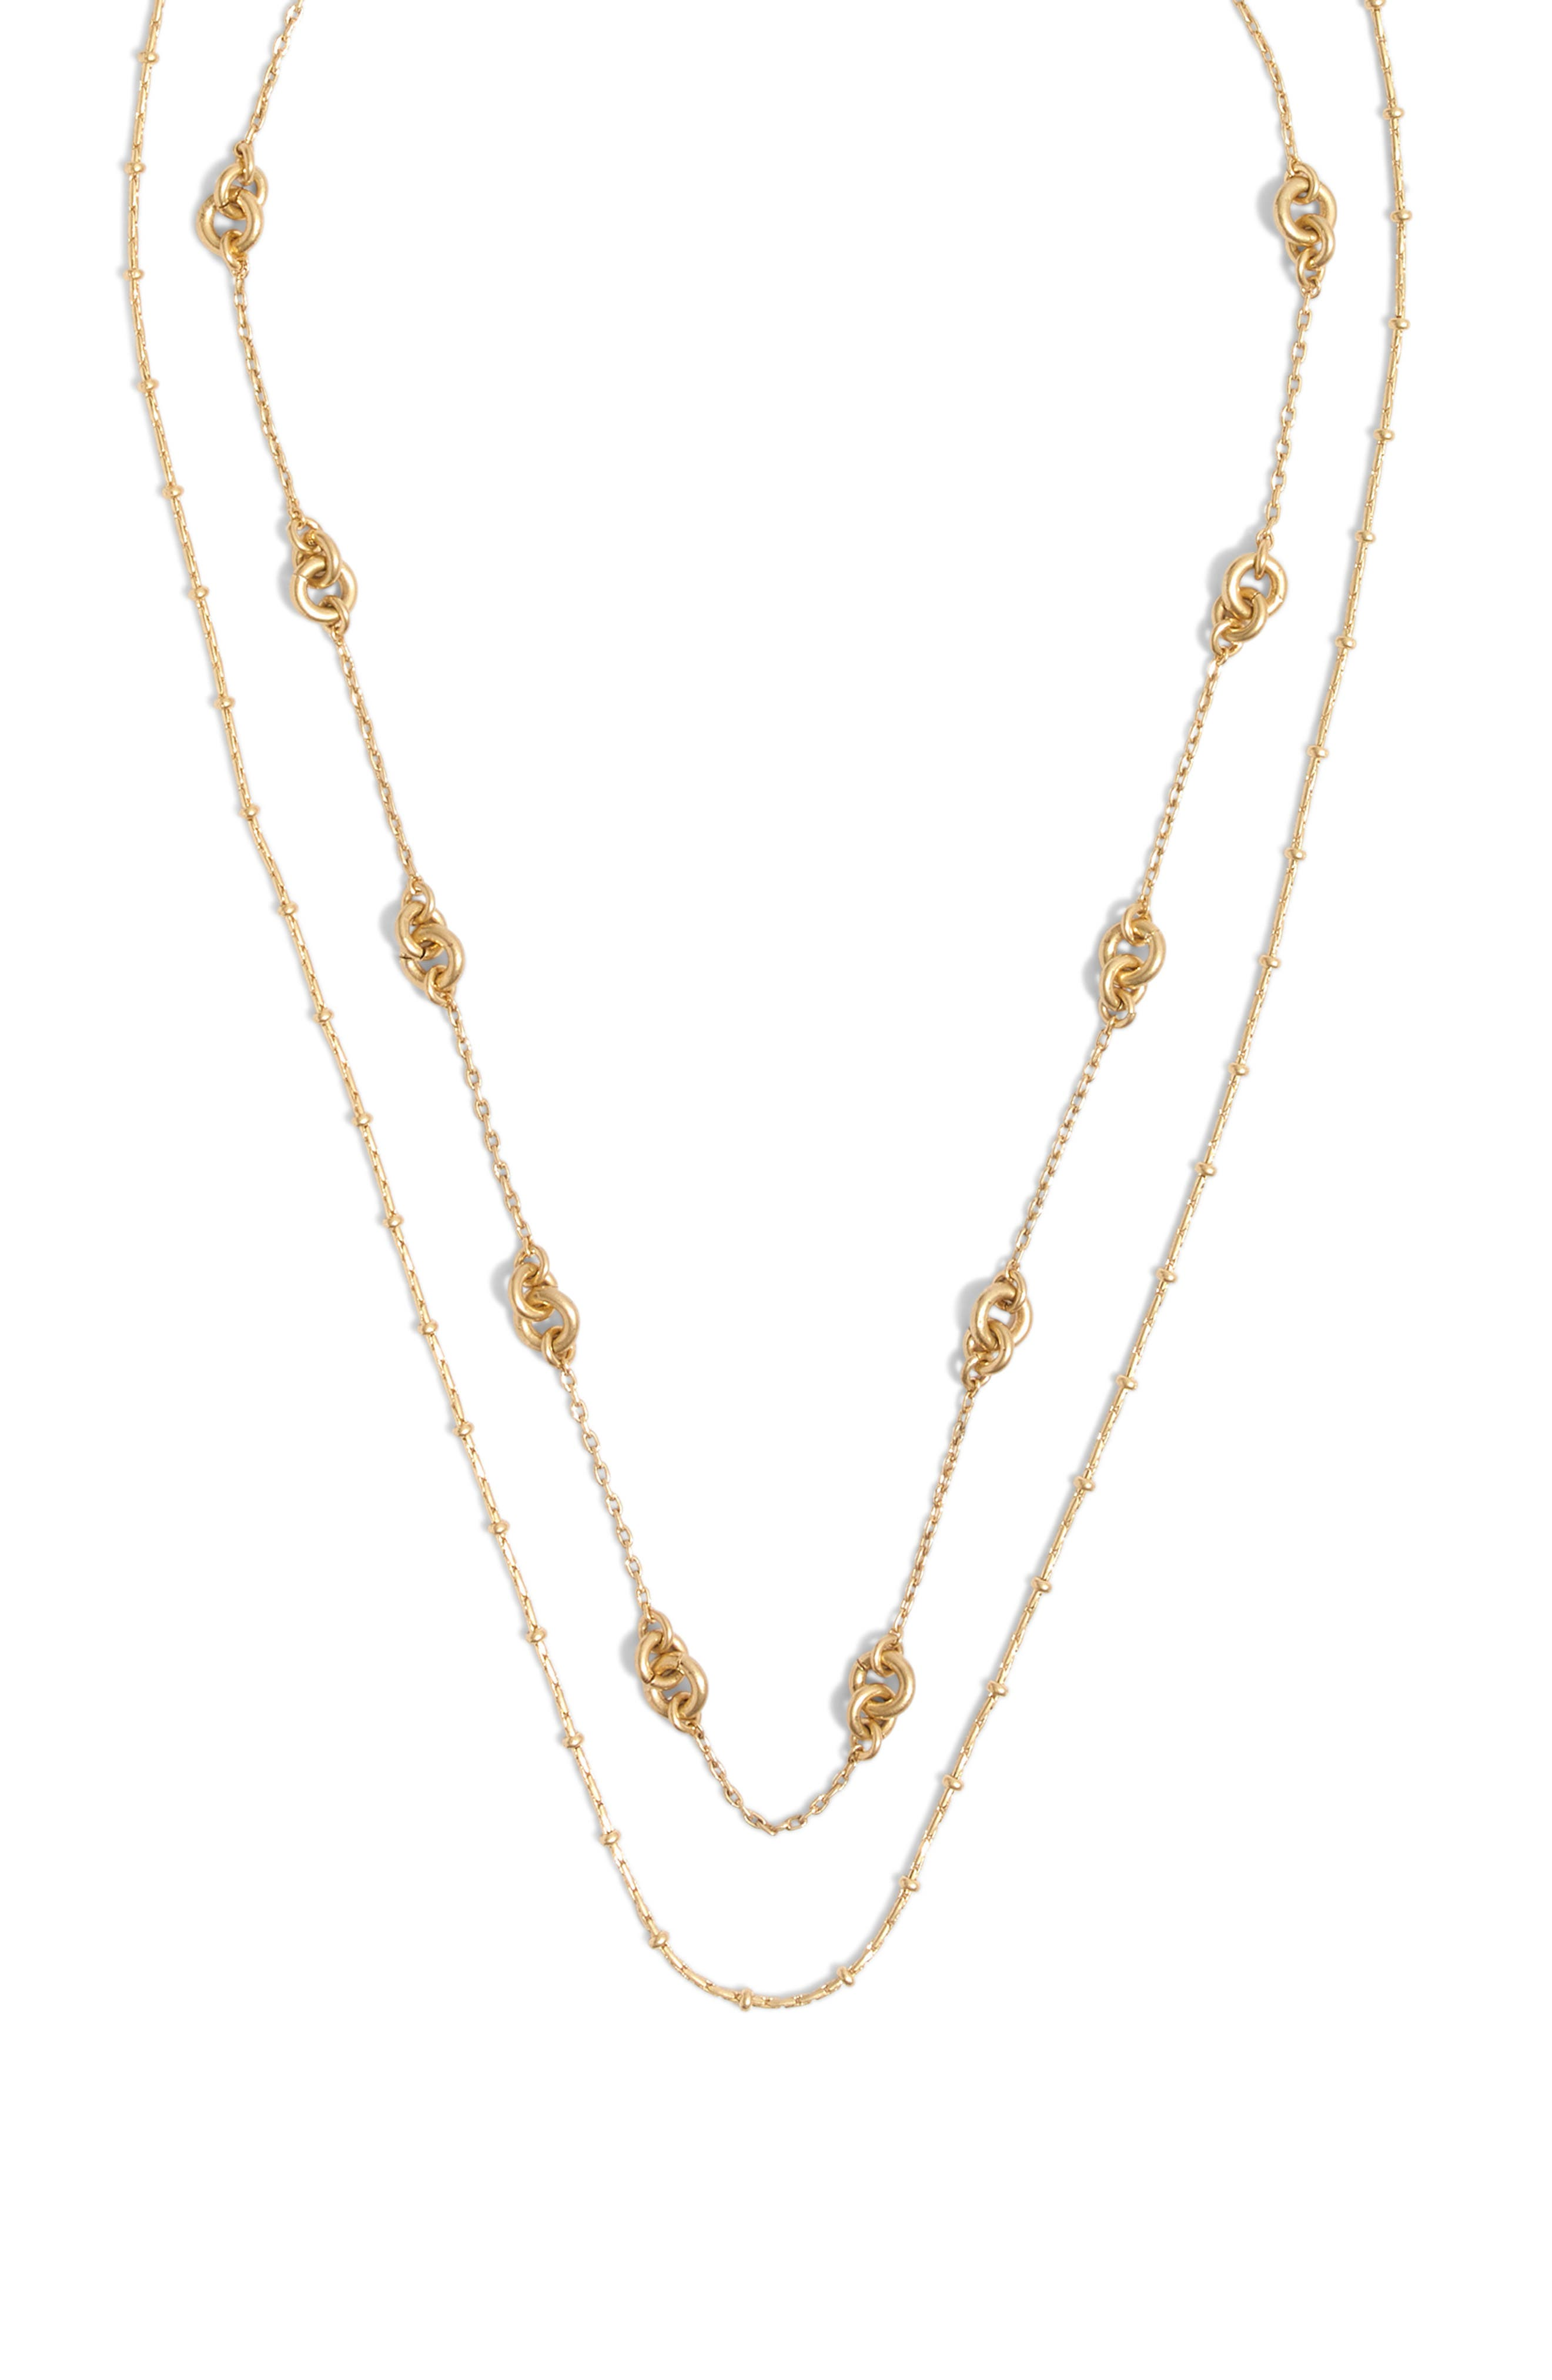 MADEWELL Layered Chain Necklace, Main, color, 710